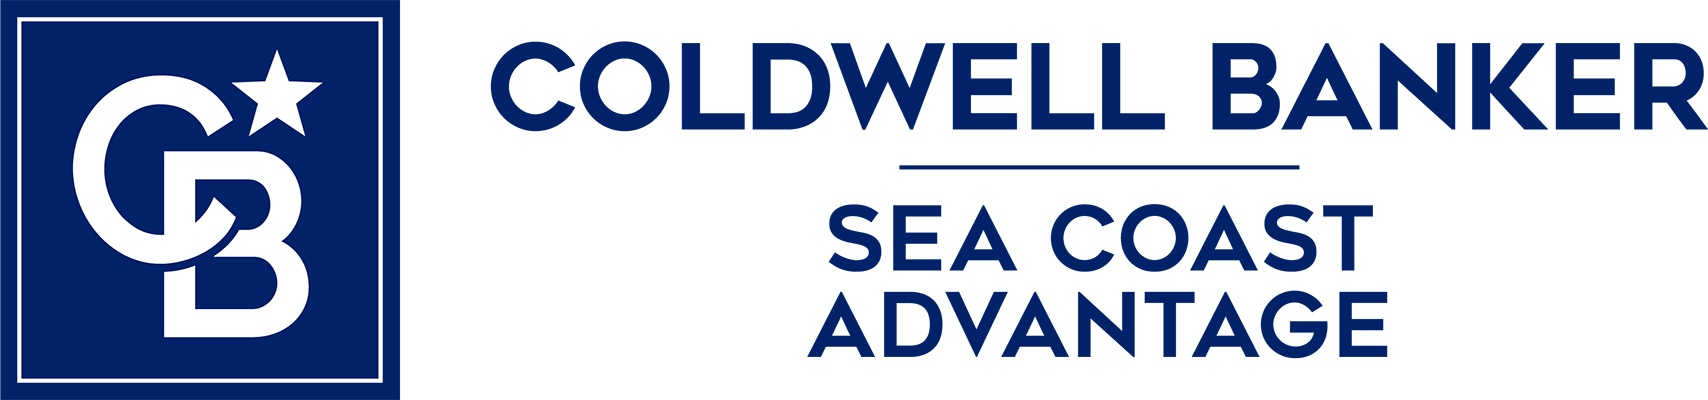 Glynn Dugan - Coldwell Banker Sea Coast Advantage Realty